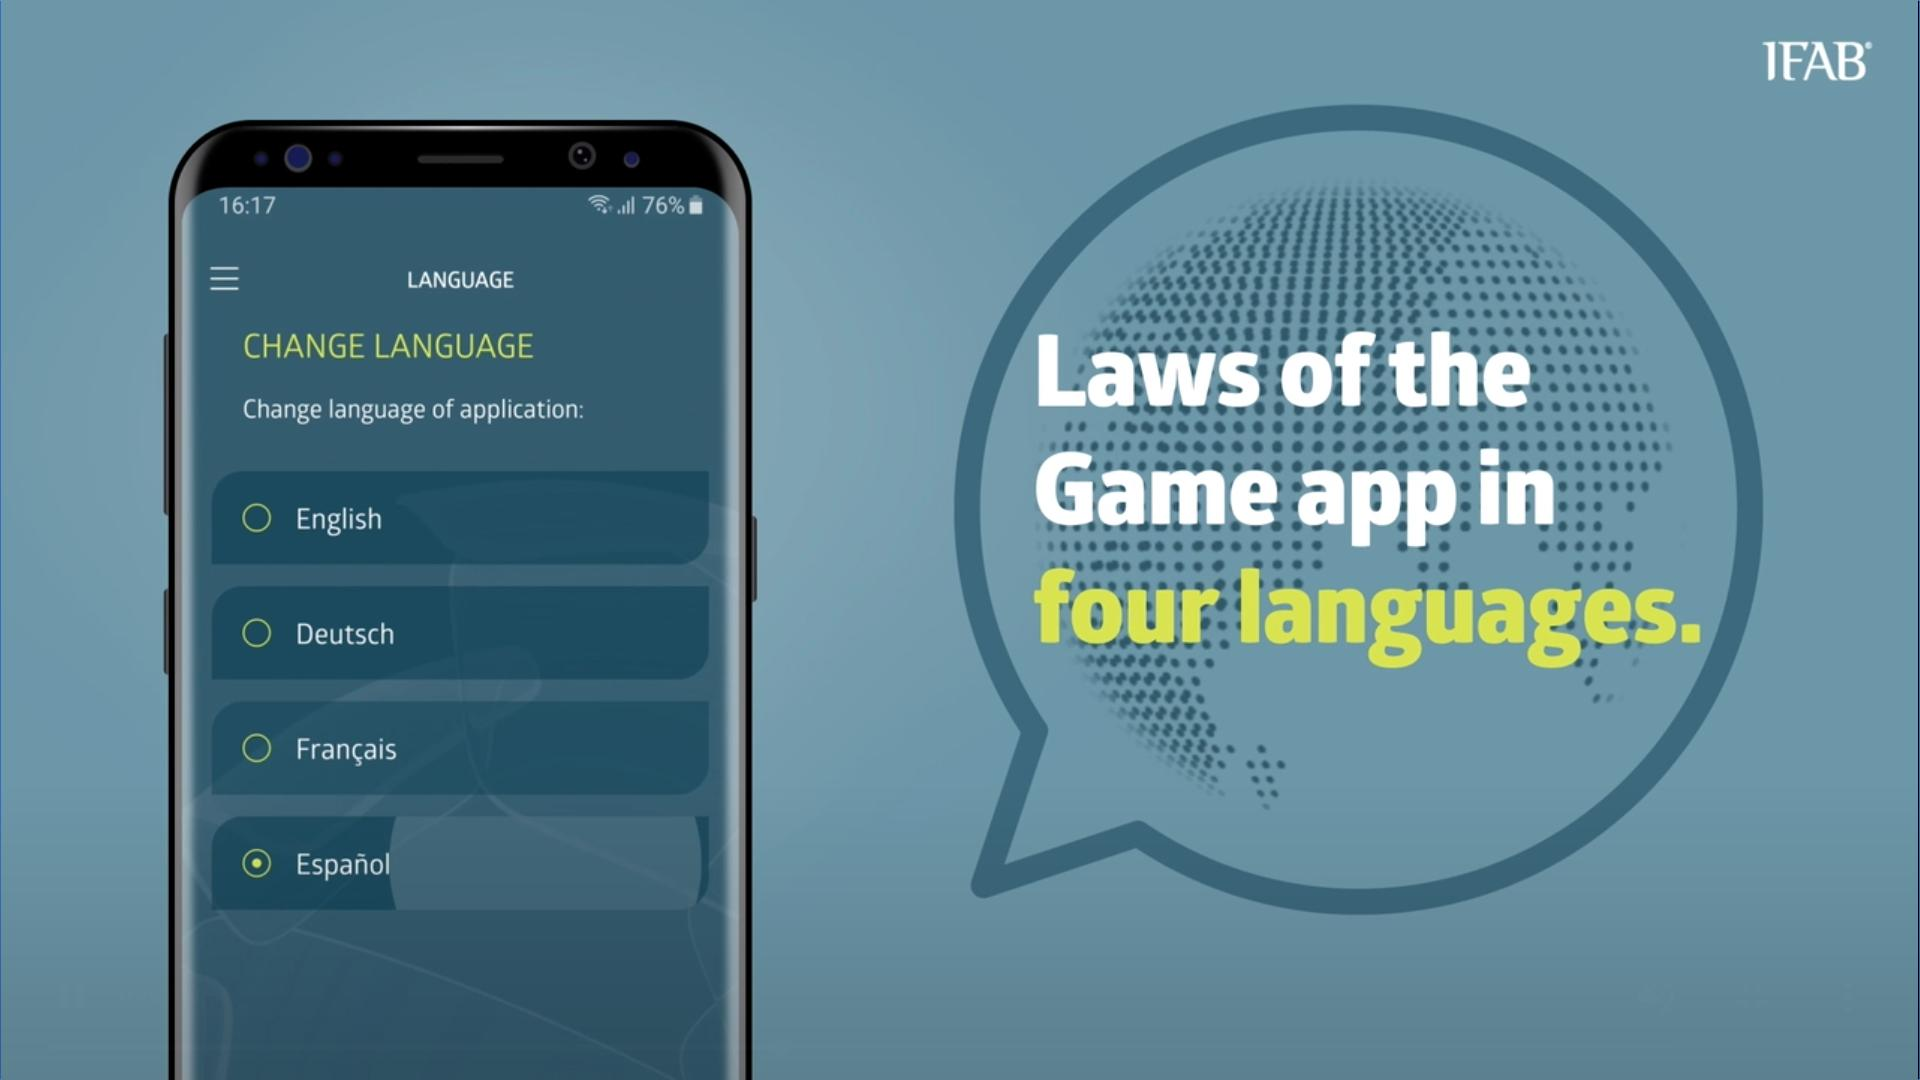 IFAB Laws of the Game App